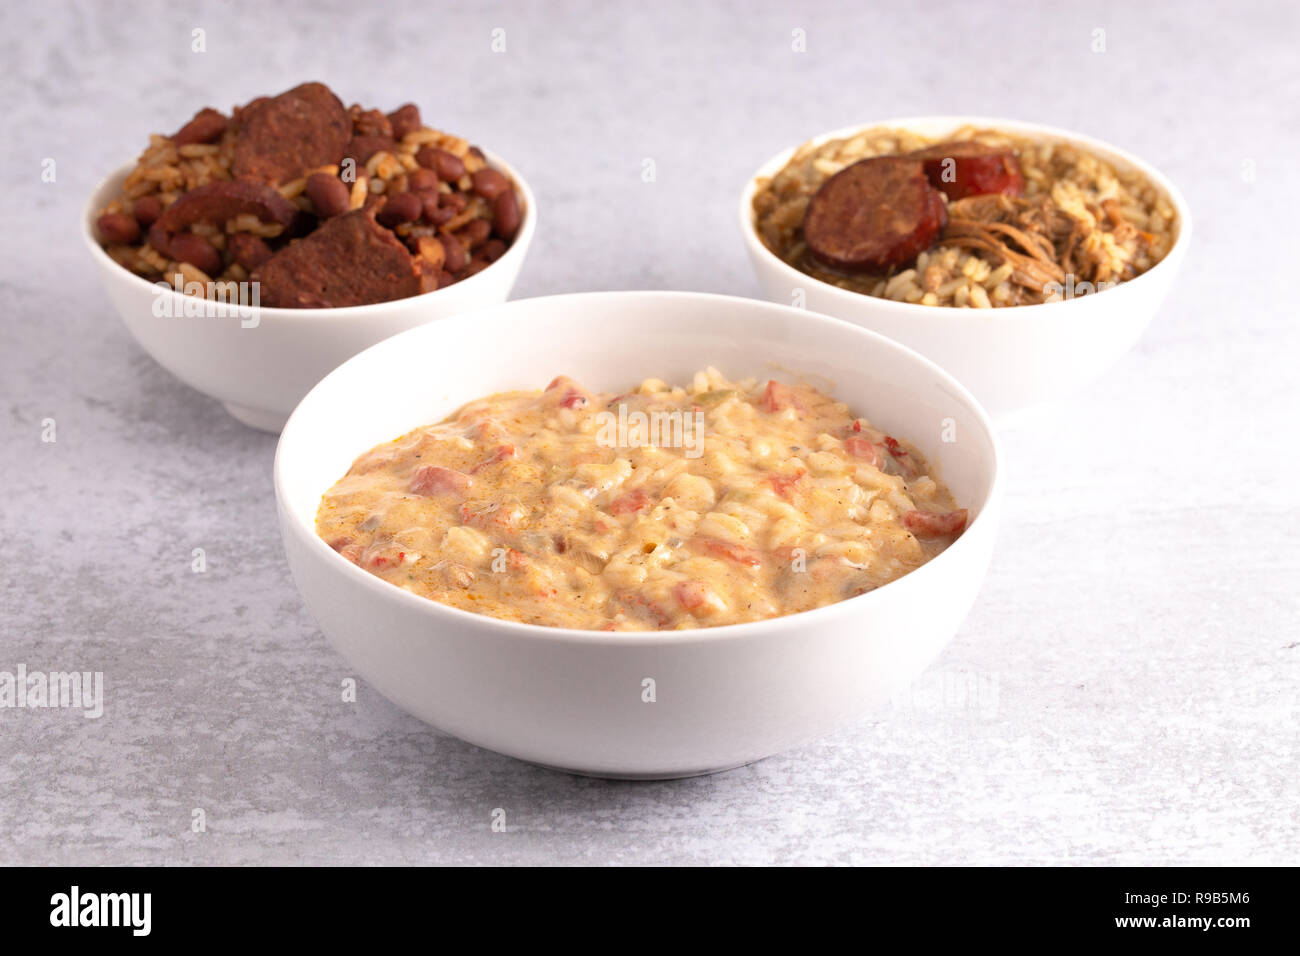 A Bowl Of Crawfish Etouffee With Gumbo And Red Beans And Rice On The Side Stock Photo Alamy